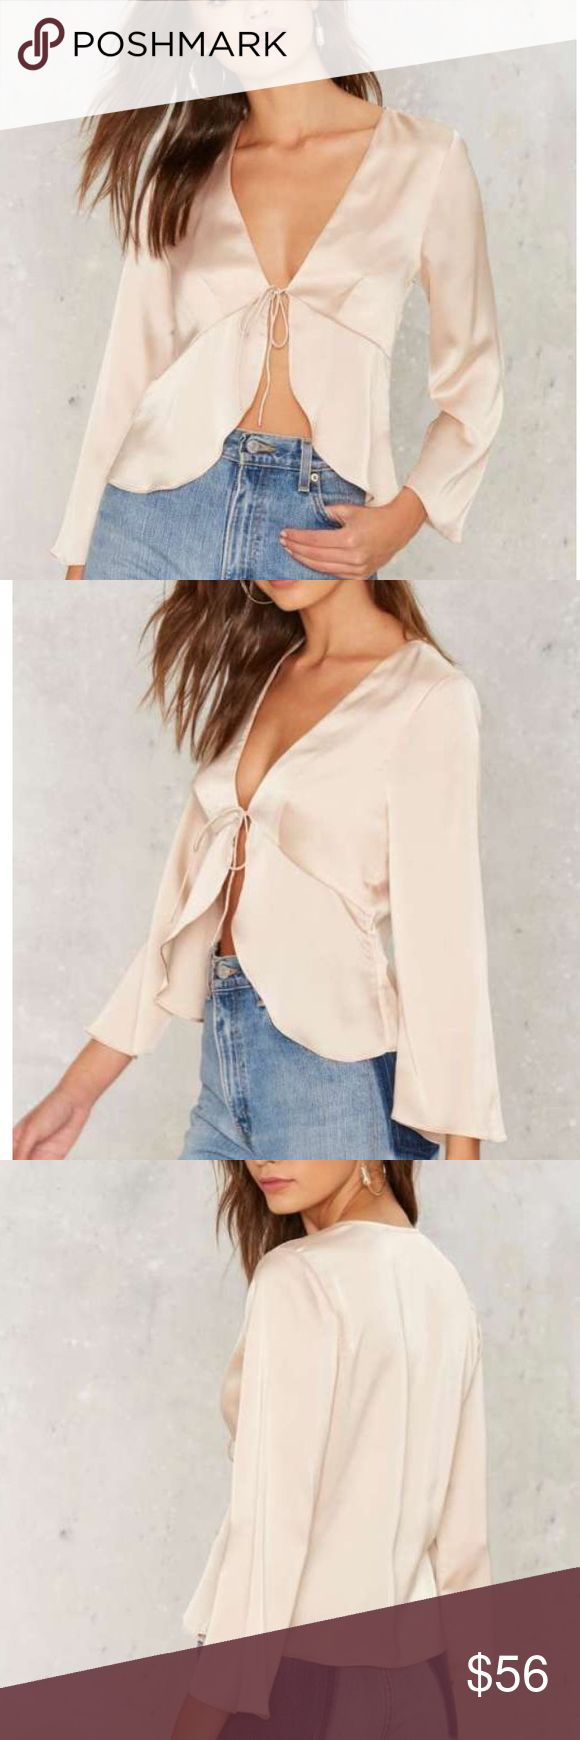 Nasty gal satin tie front blouse Size medium new with tags satin shirt, super cute with jeans or a pencil skirt! Original price is 68 and it's sold out on nasty gals website so please no low ball offers! Nasty Gal Tops Blouses